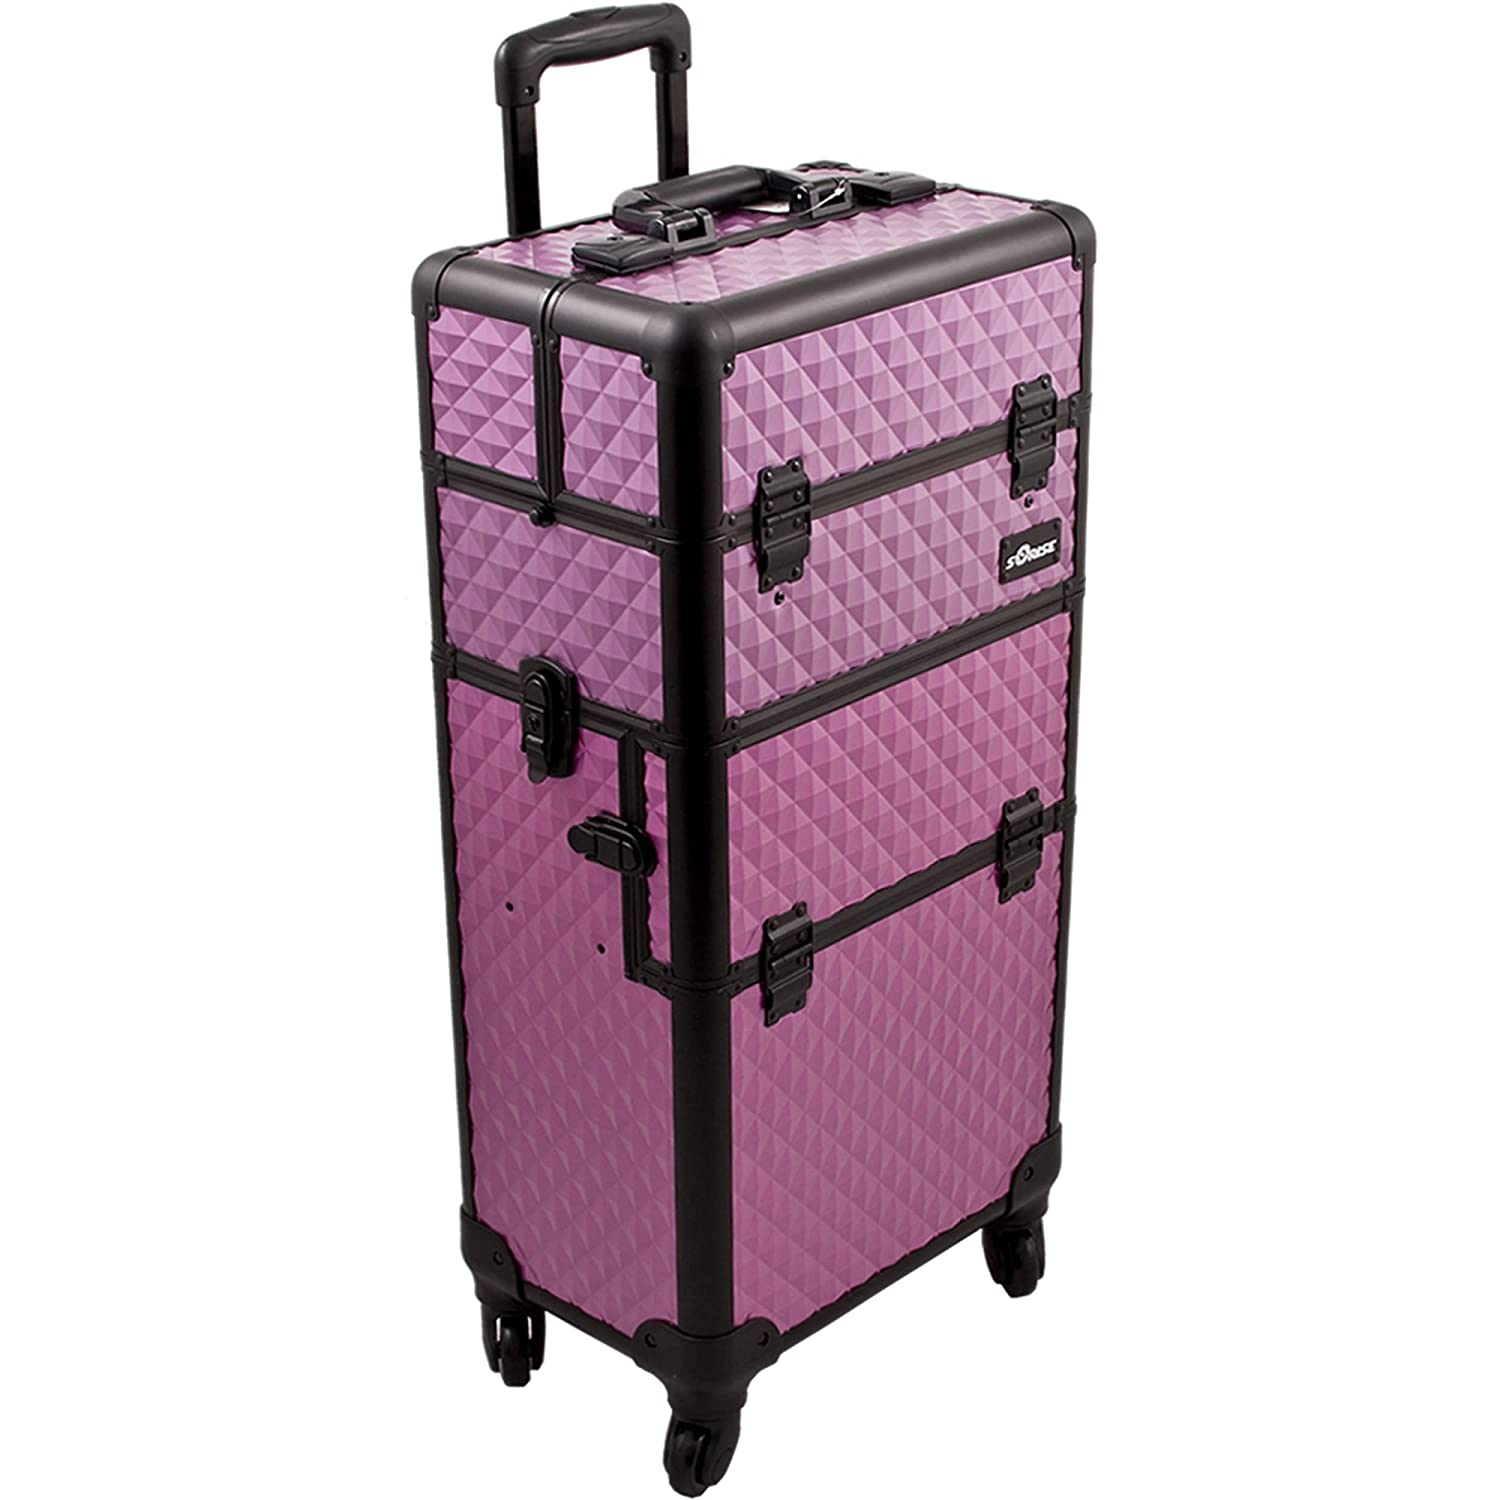 SUNRISE Makeup Case on Wheels I3261 2 in 1 Hair Stylist Organizer, 4 Wheel Spinner, 3 Trays and 1 Removable Tray, Locking with Mirror and Shoulder Strap, Purple Diamond